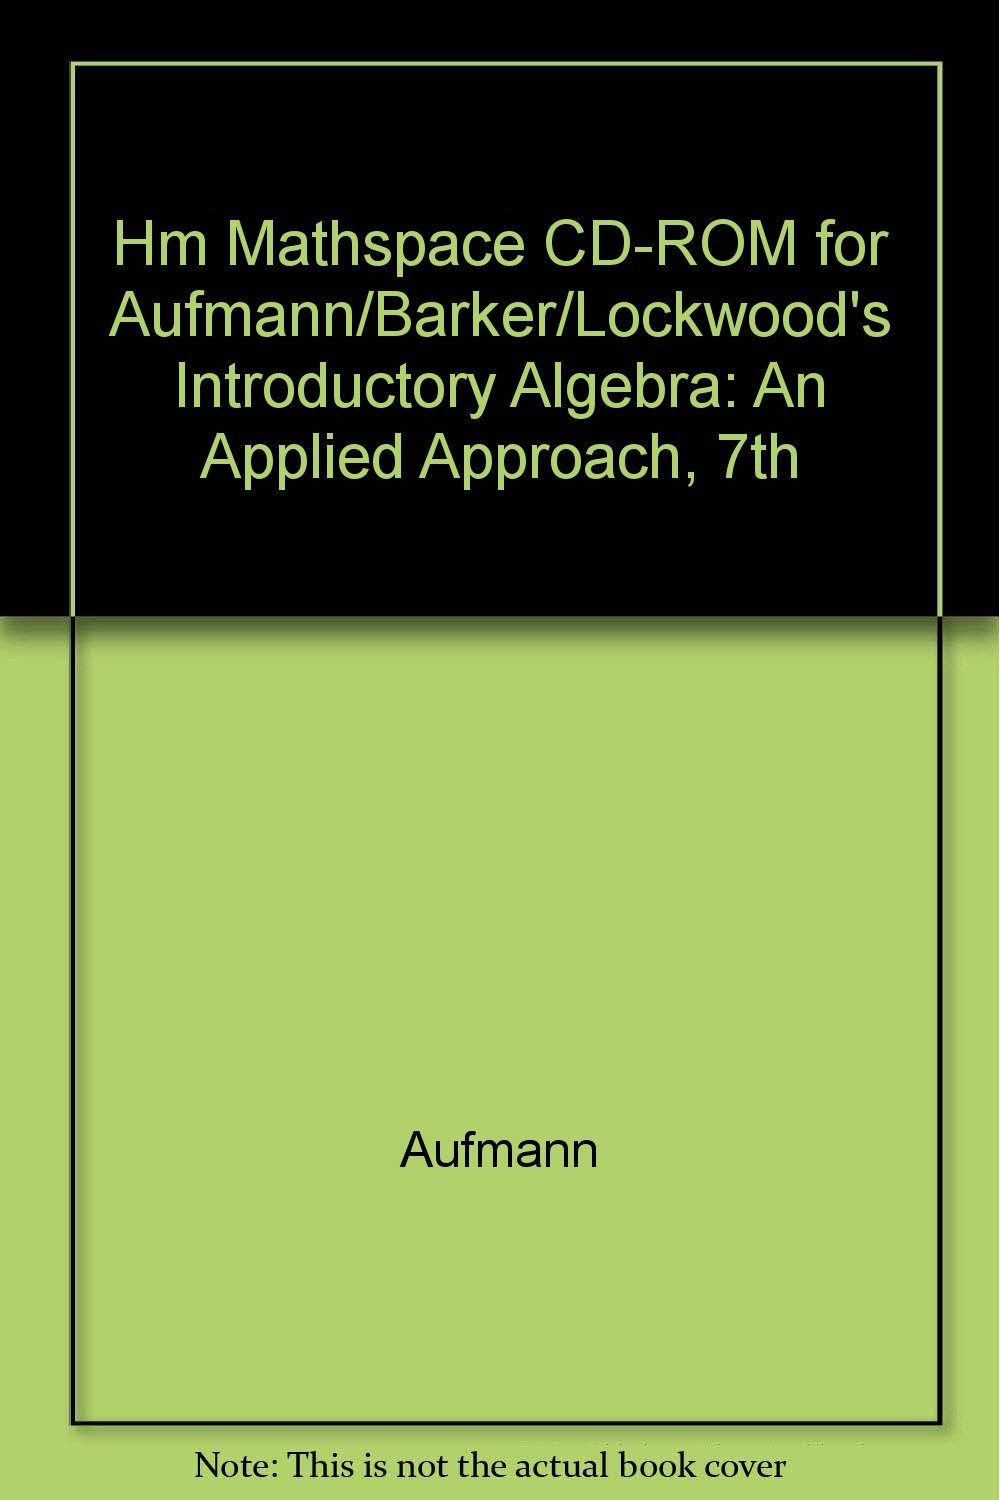 HM MATHSpace CD-ROM for Aufmann/Barker/Lockwood's Introductory Algebra: An Applied Approach, 7th PDF